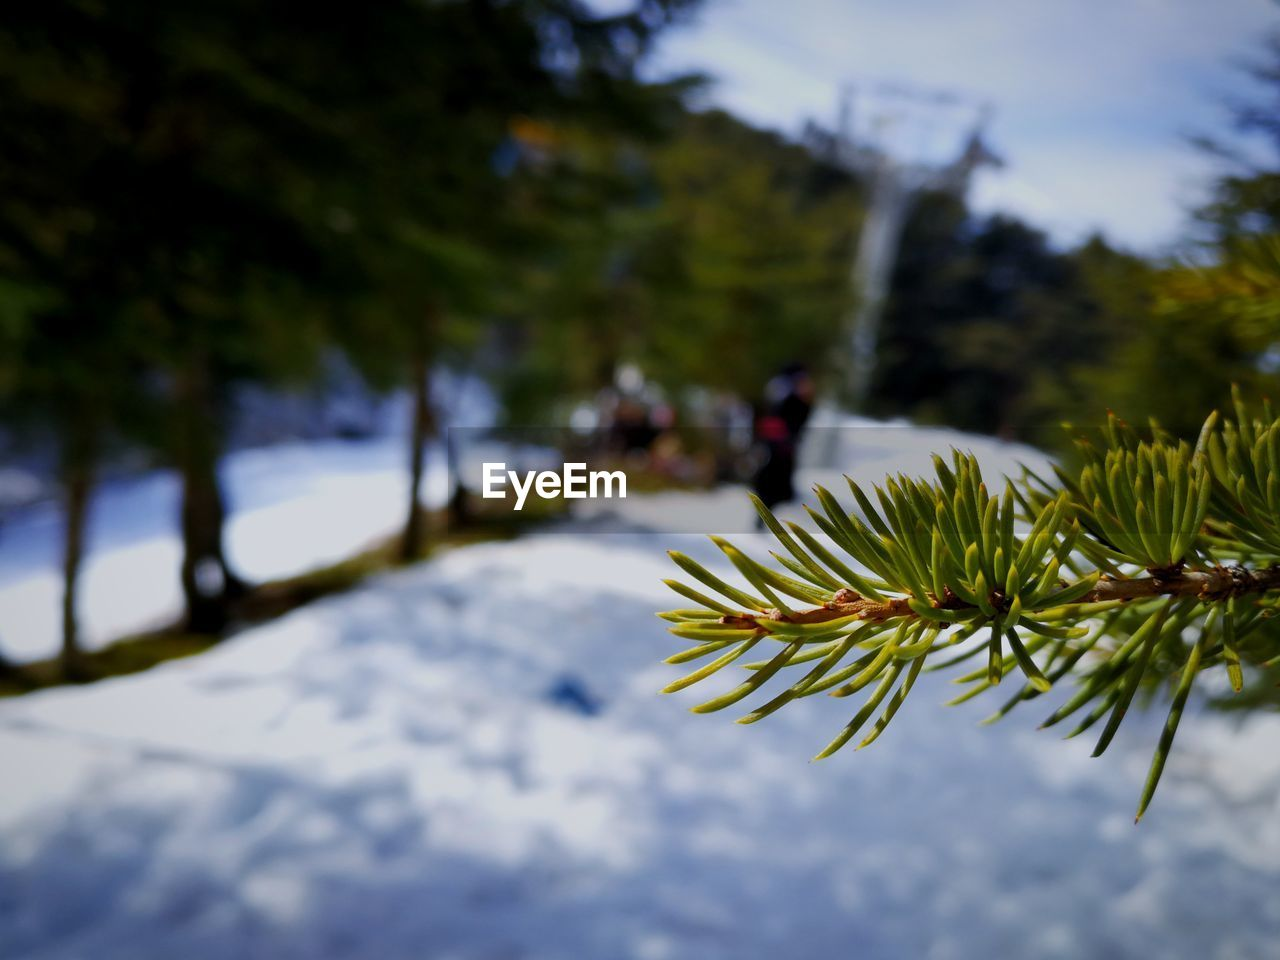 nature, tree, focus on foreground, growth, outdoors, day, green color, plant, beauty in nature, leaf, no people, winter, cold temperature, snow, sky, close-up, freshness